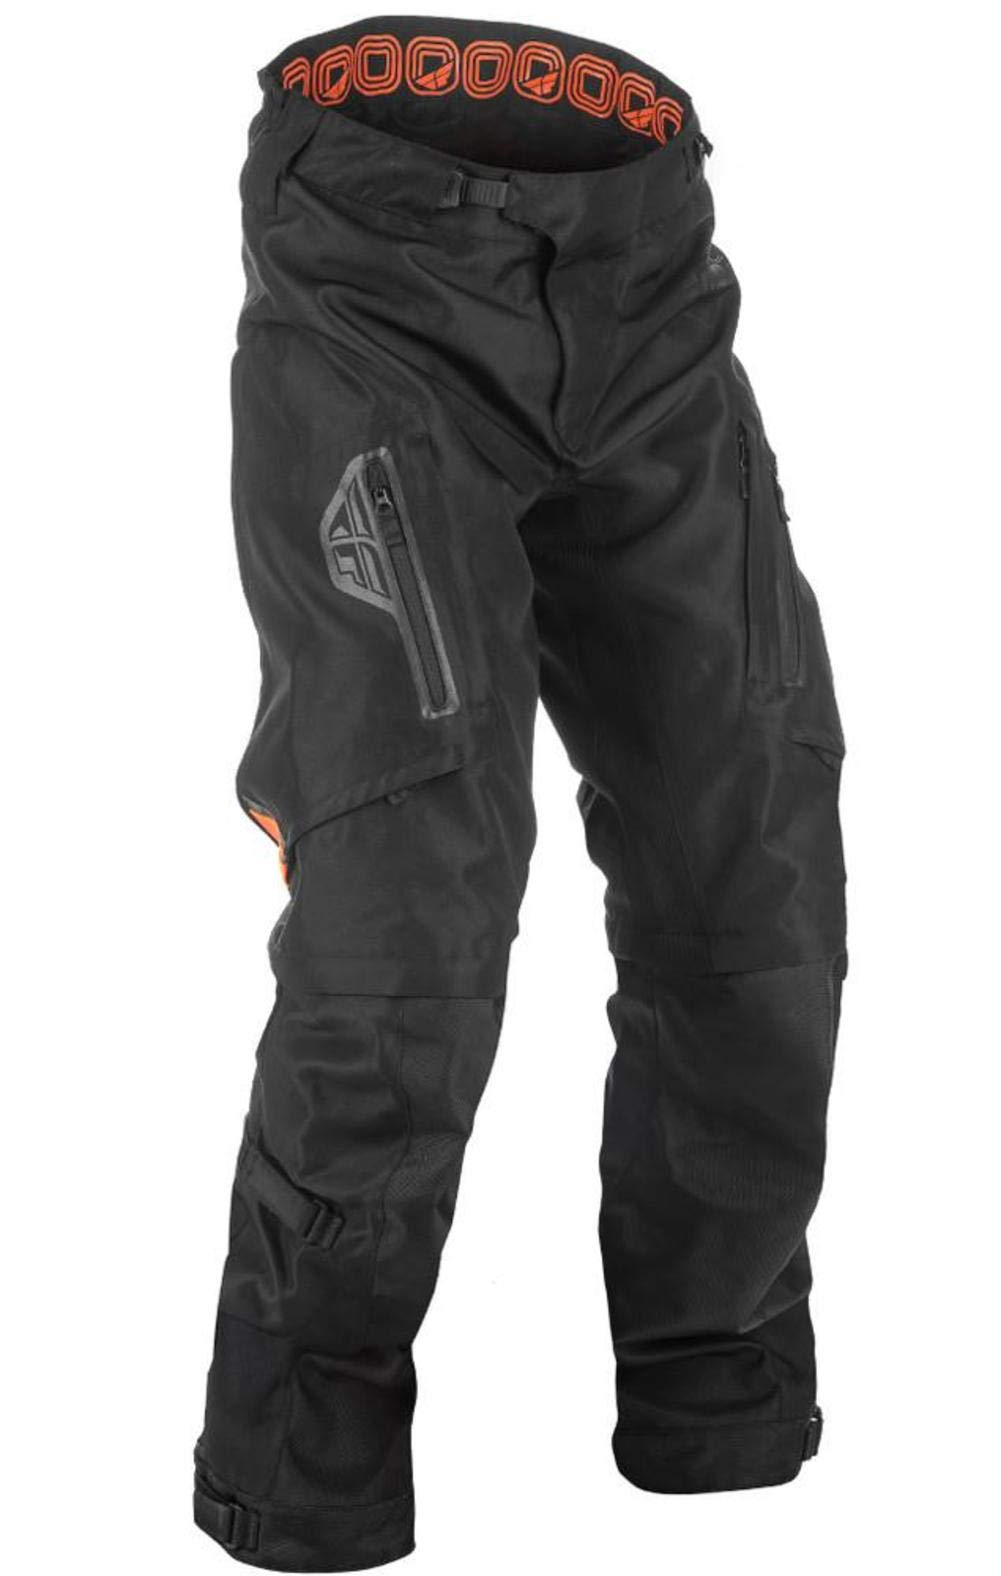 Fly Racing Men's Patrol Over Boot Pants (Black/Gray, Size 40)